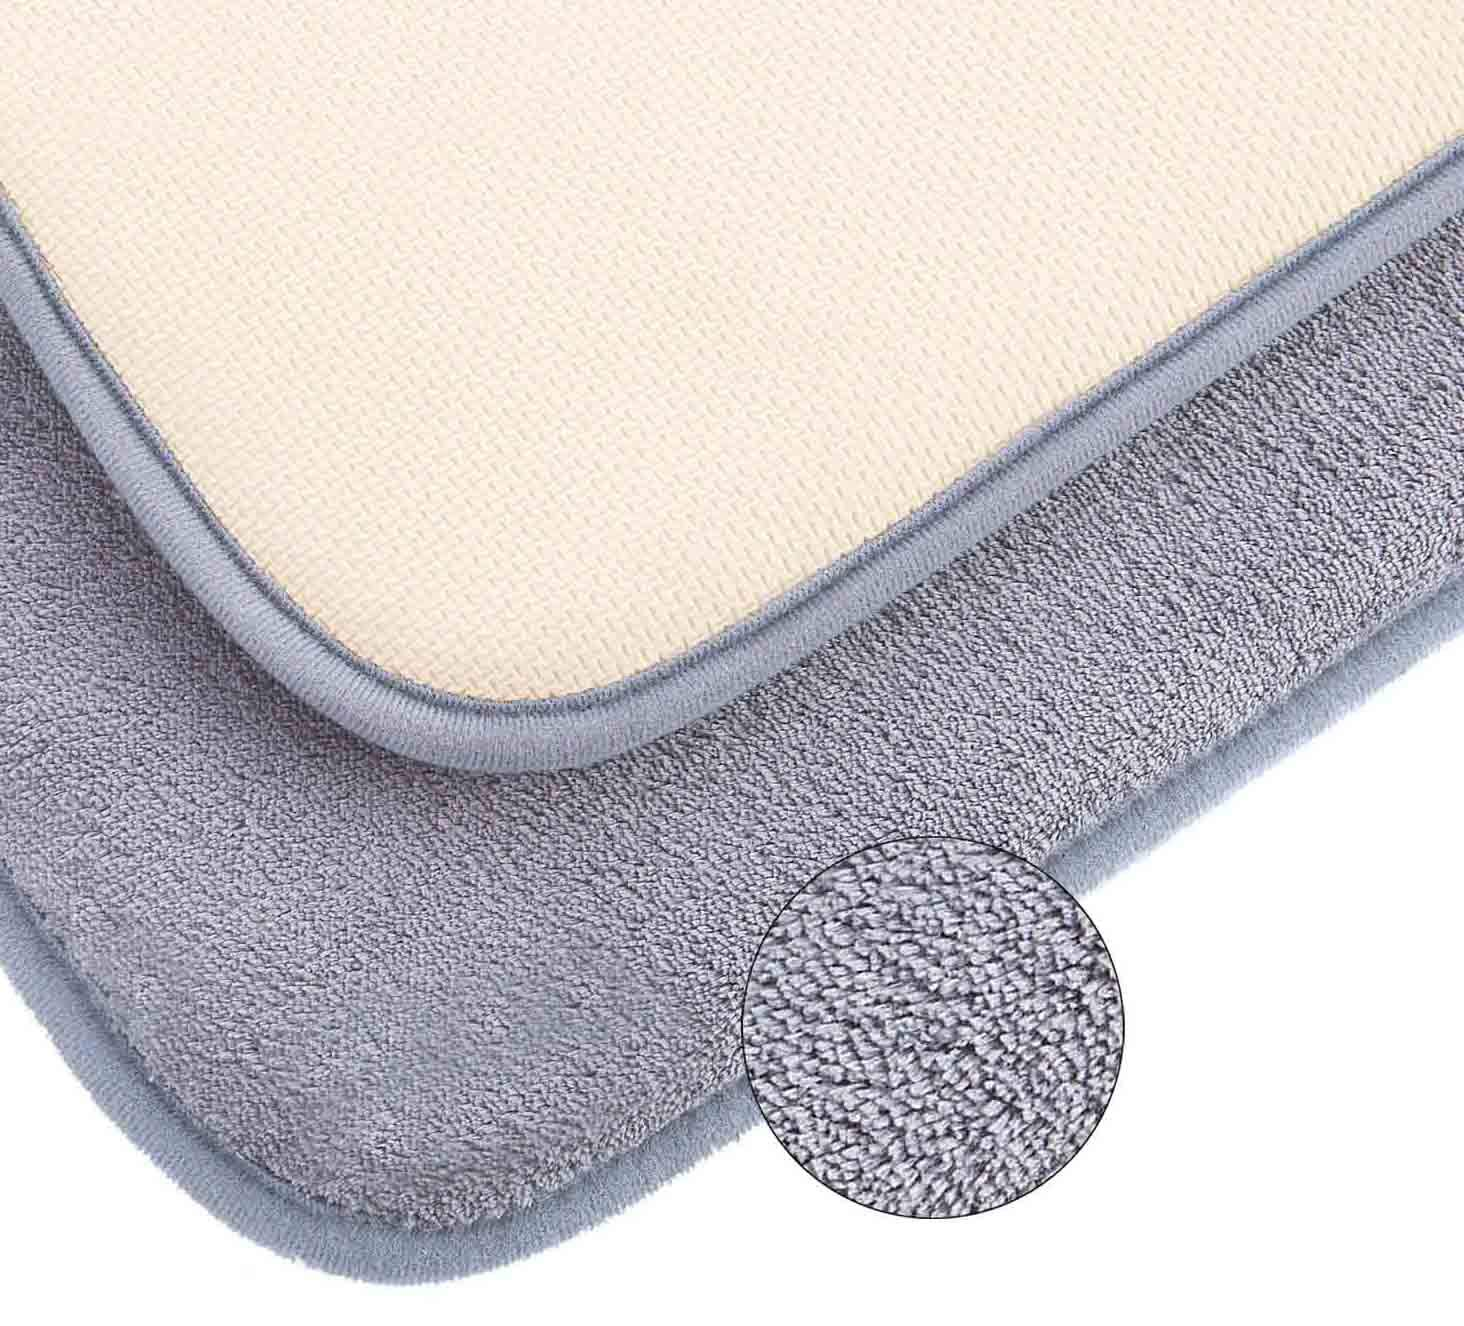 Memory Foam Bath Mat Luxurious Large Bathroom Rugs Non Slip with Soft Maximum Absorbency Washable Quickly Drying Floor Mats (20'' X 32'', Gray)